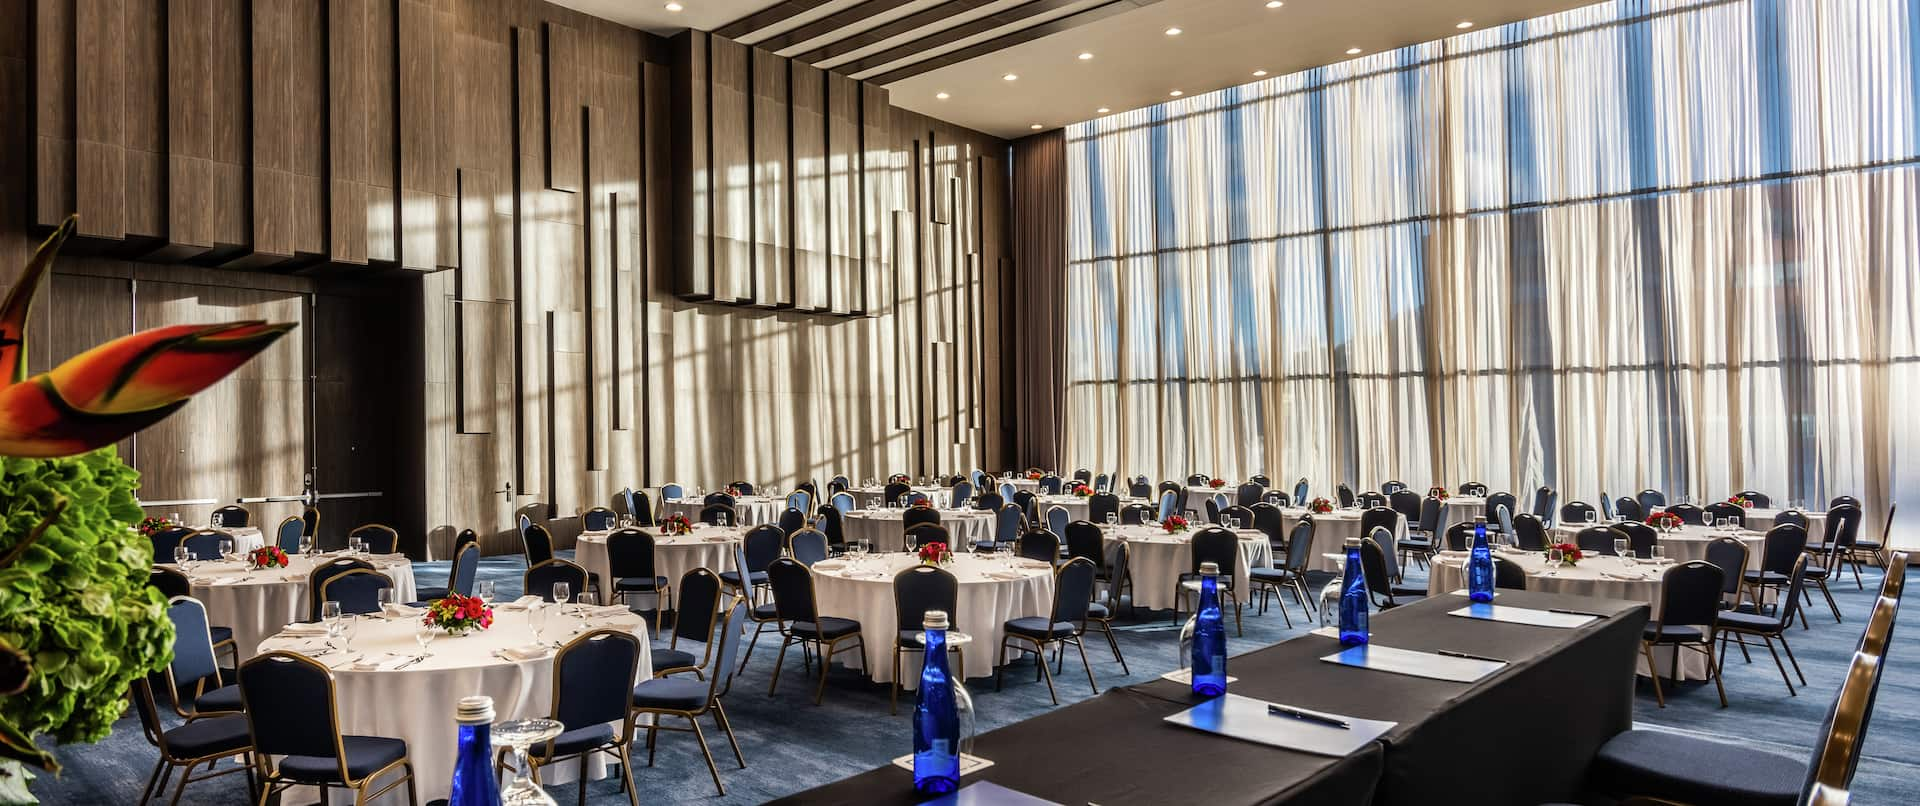 A Large Meeting Space Setup with Round Tables